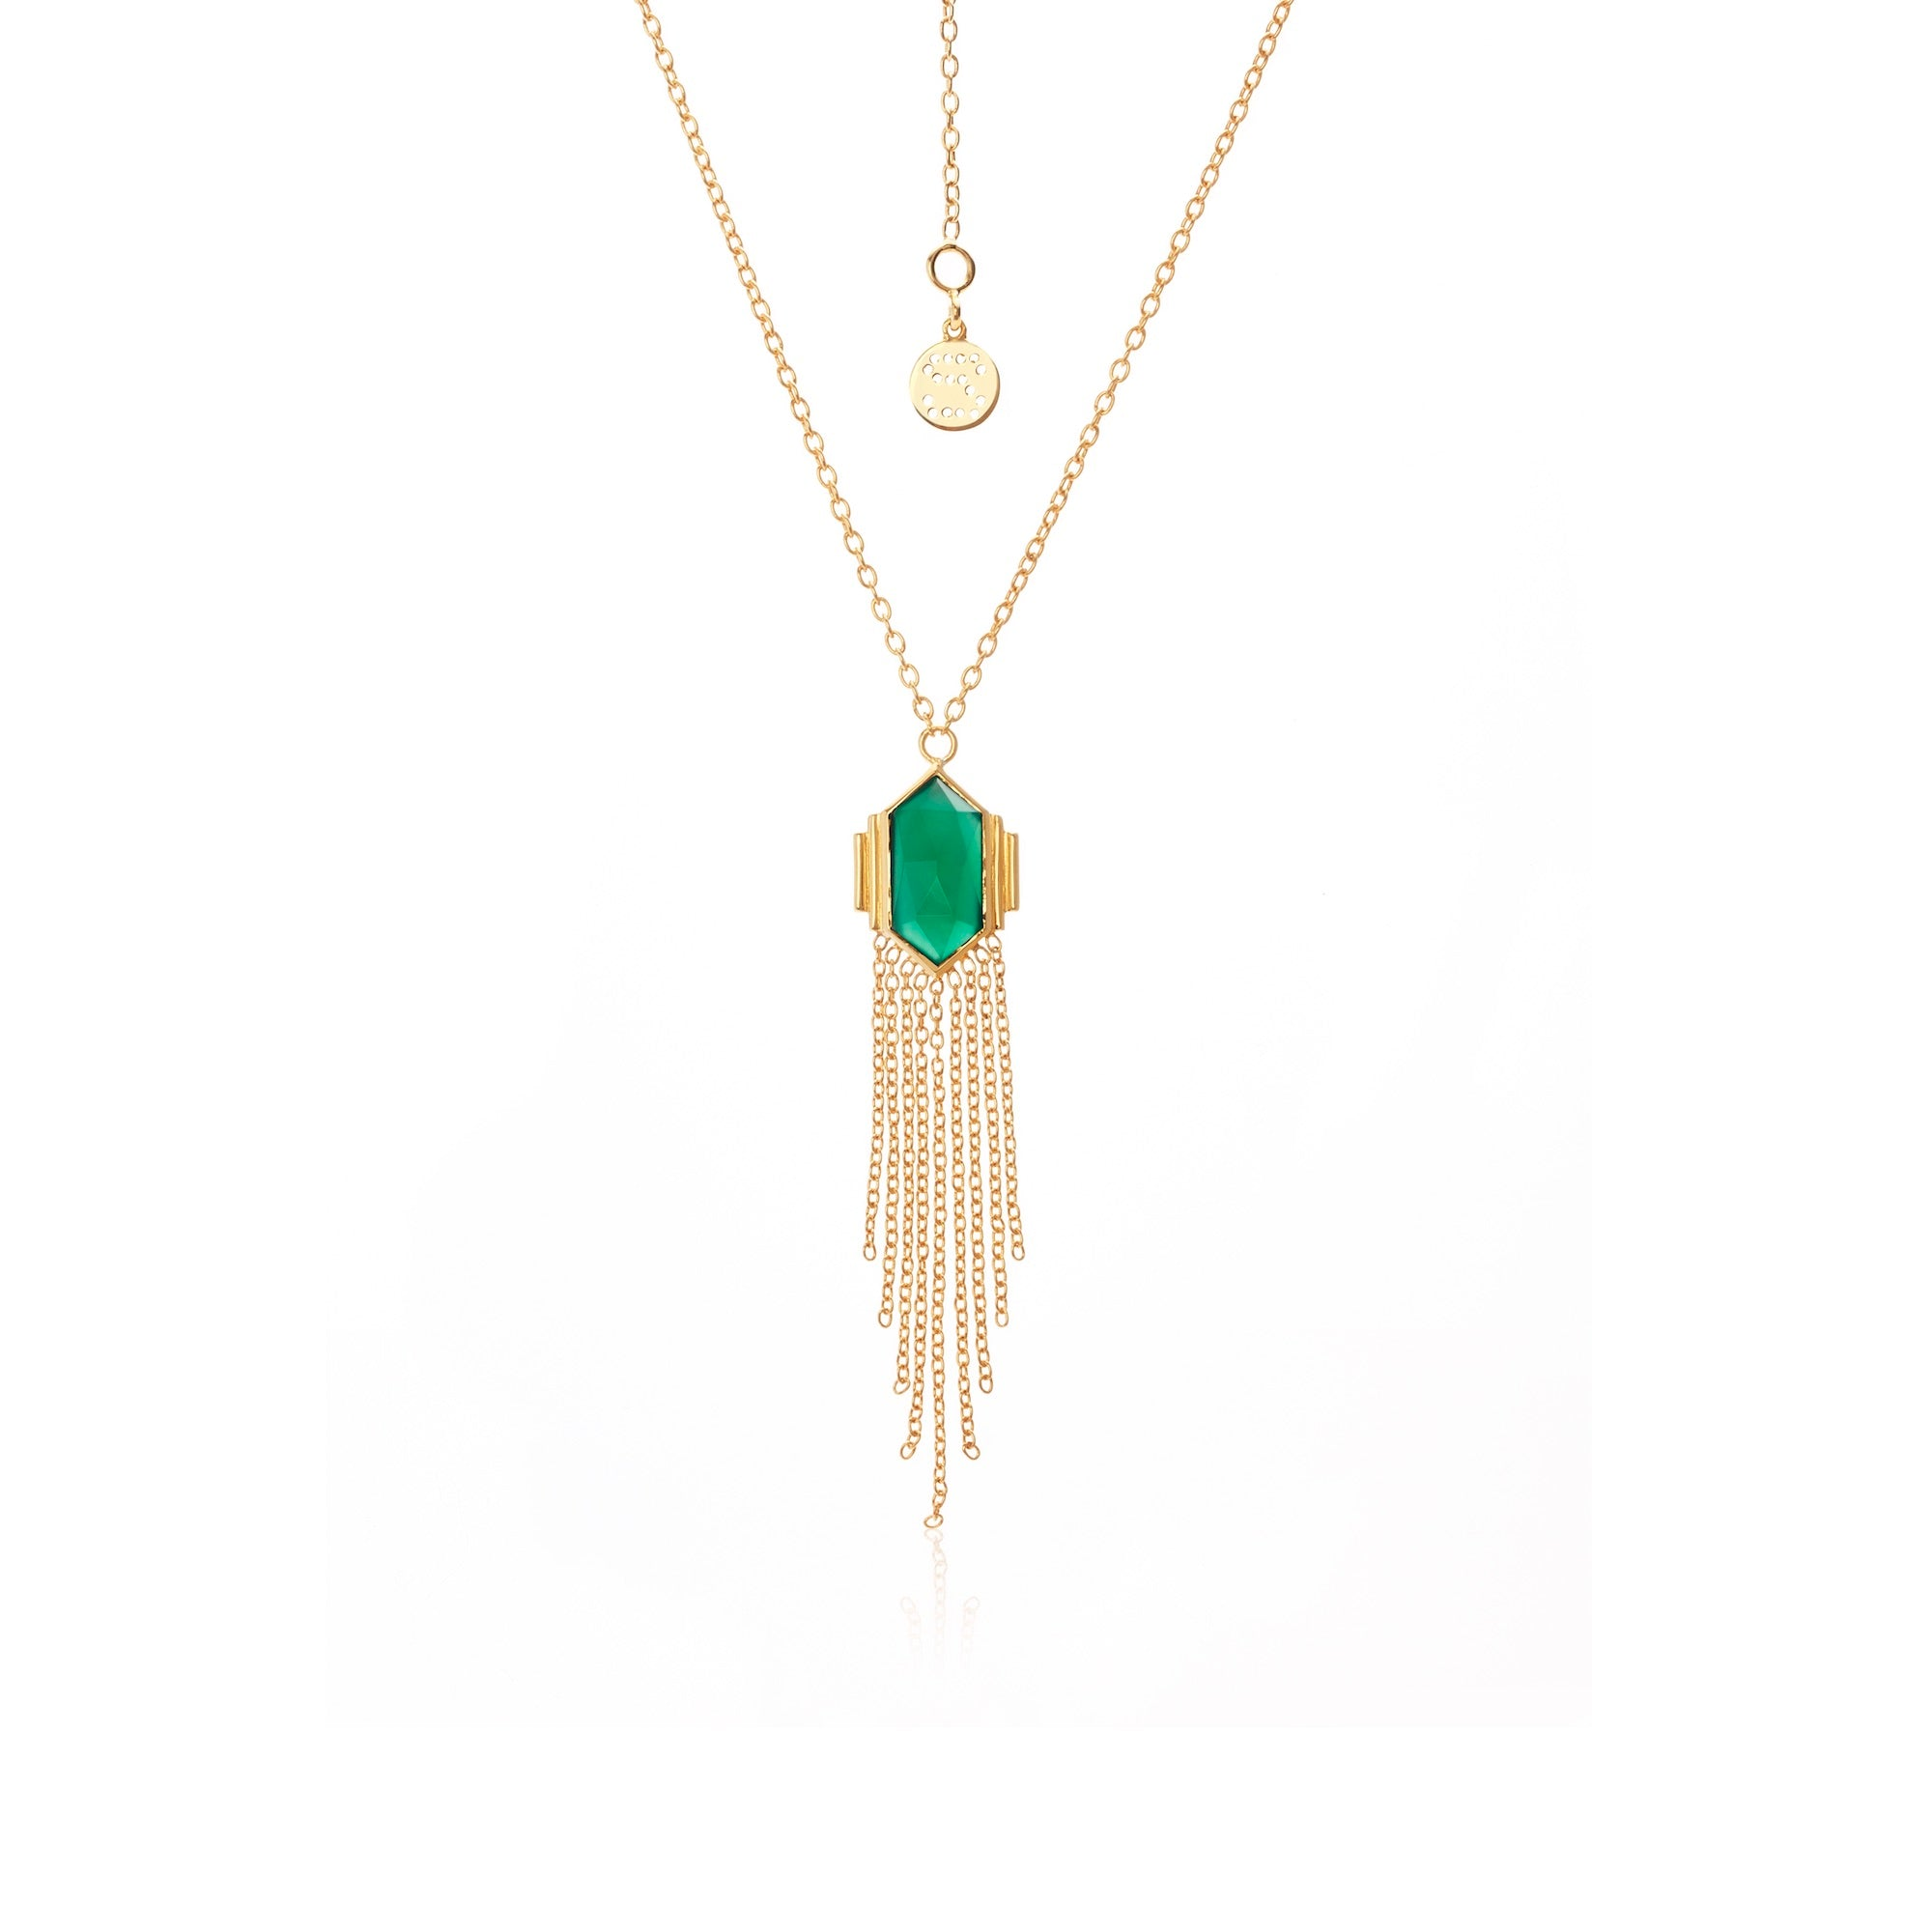 Silk & Steel Jewellery Glamour Fringe Necklace Green Onyx Gold